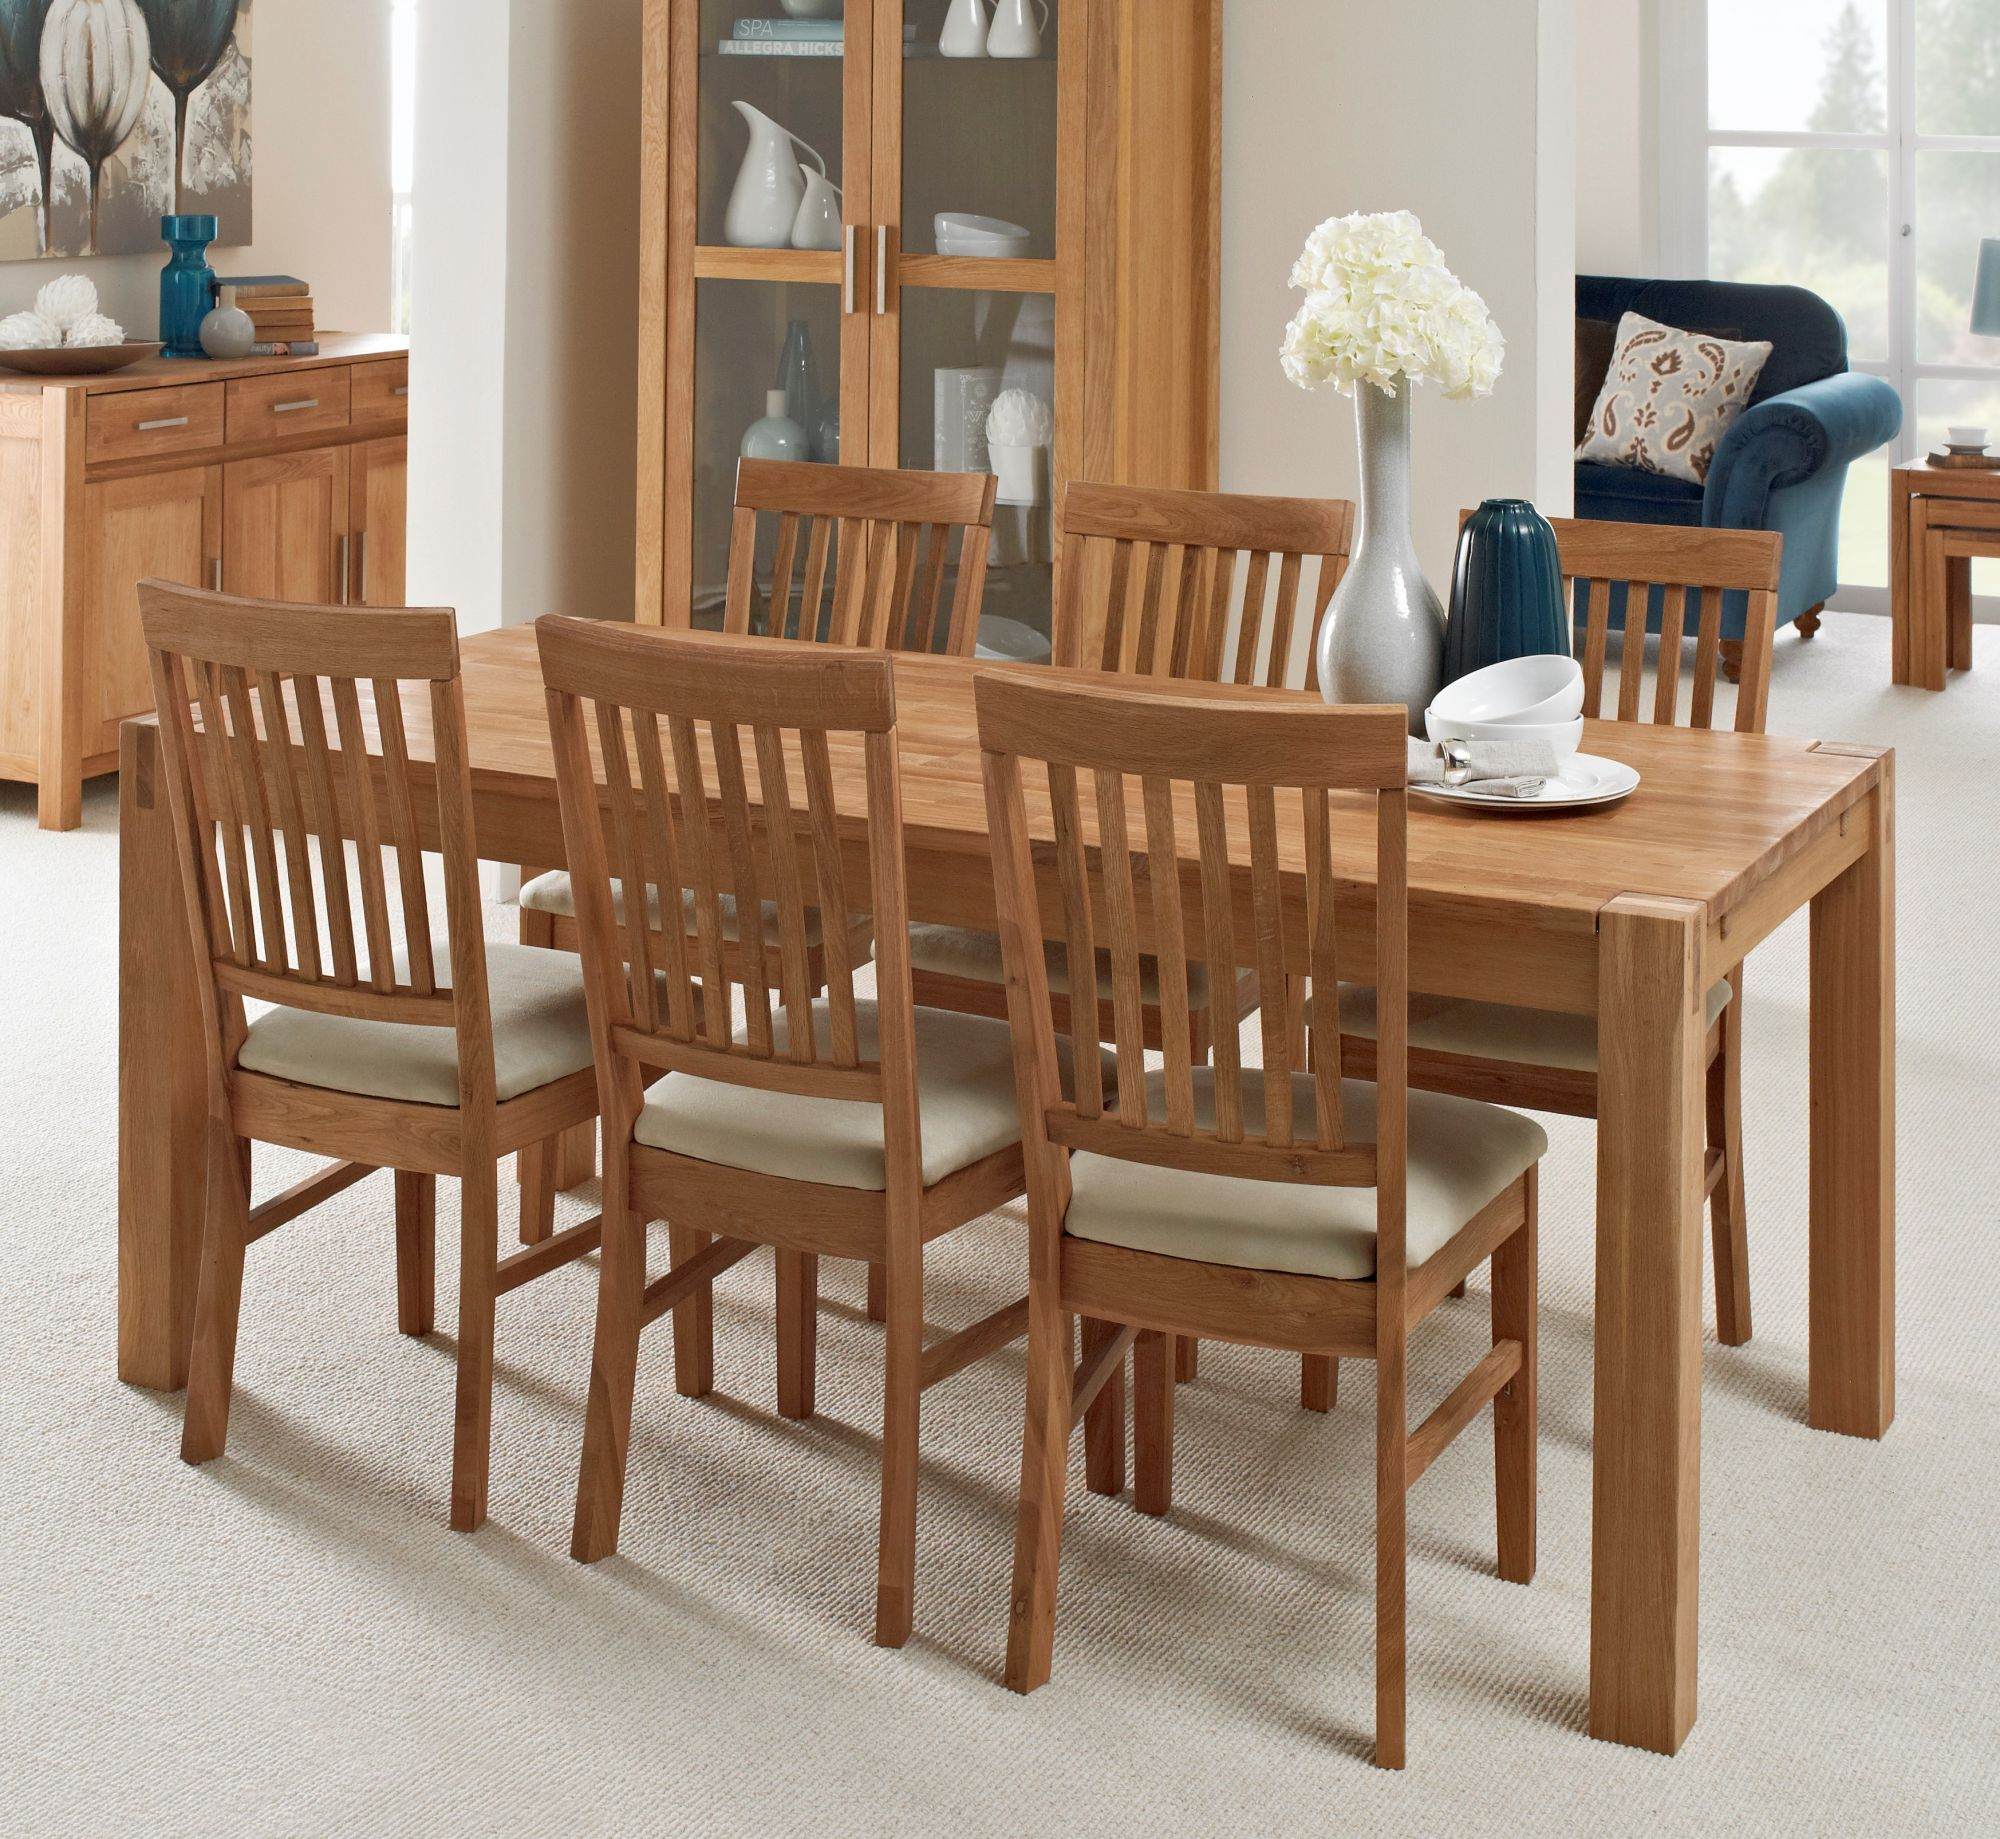 Living homes collection regis oak 180x90cm dining table 6 fabric chairs dining sets living homes